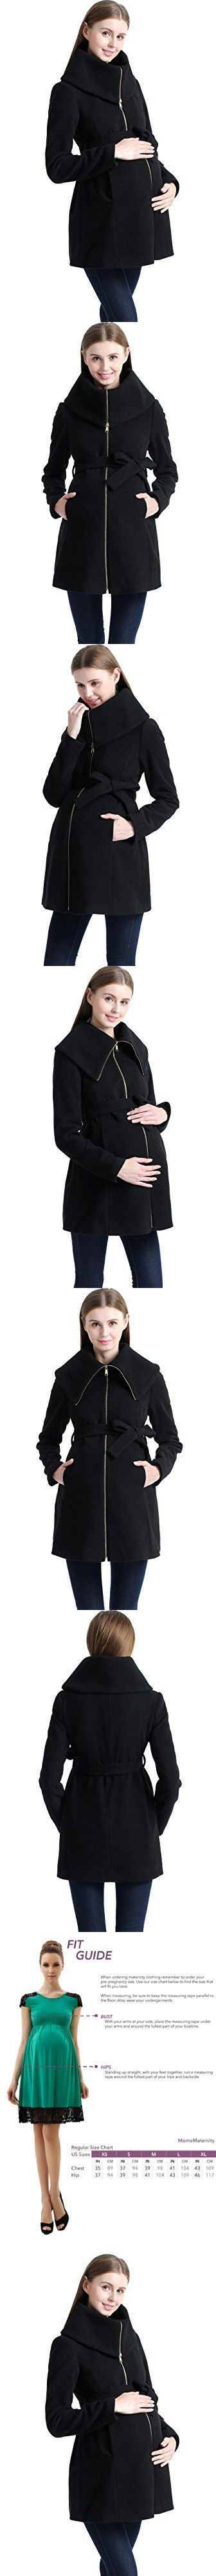 Momo Maternity Women's Wool Blend Fold Collar Zip Up Coat- Black L